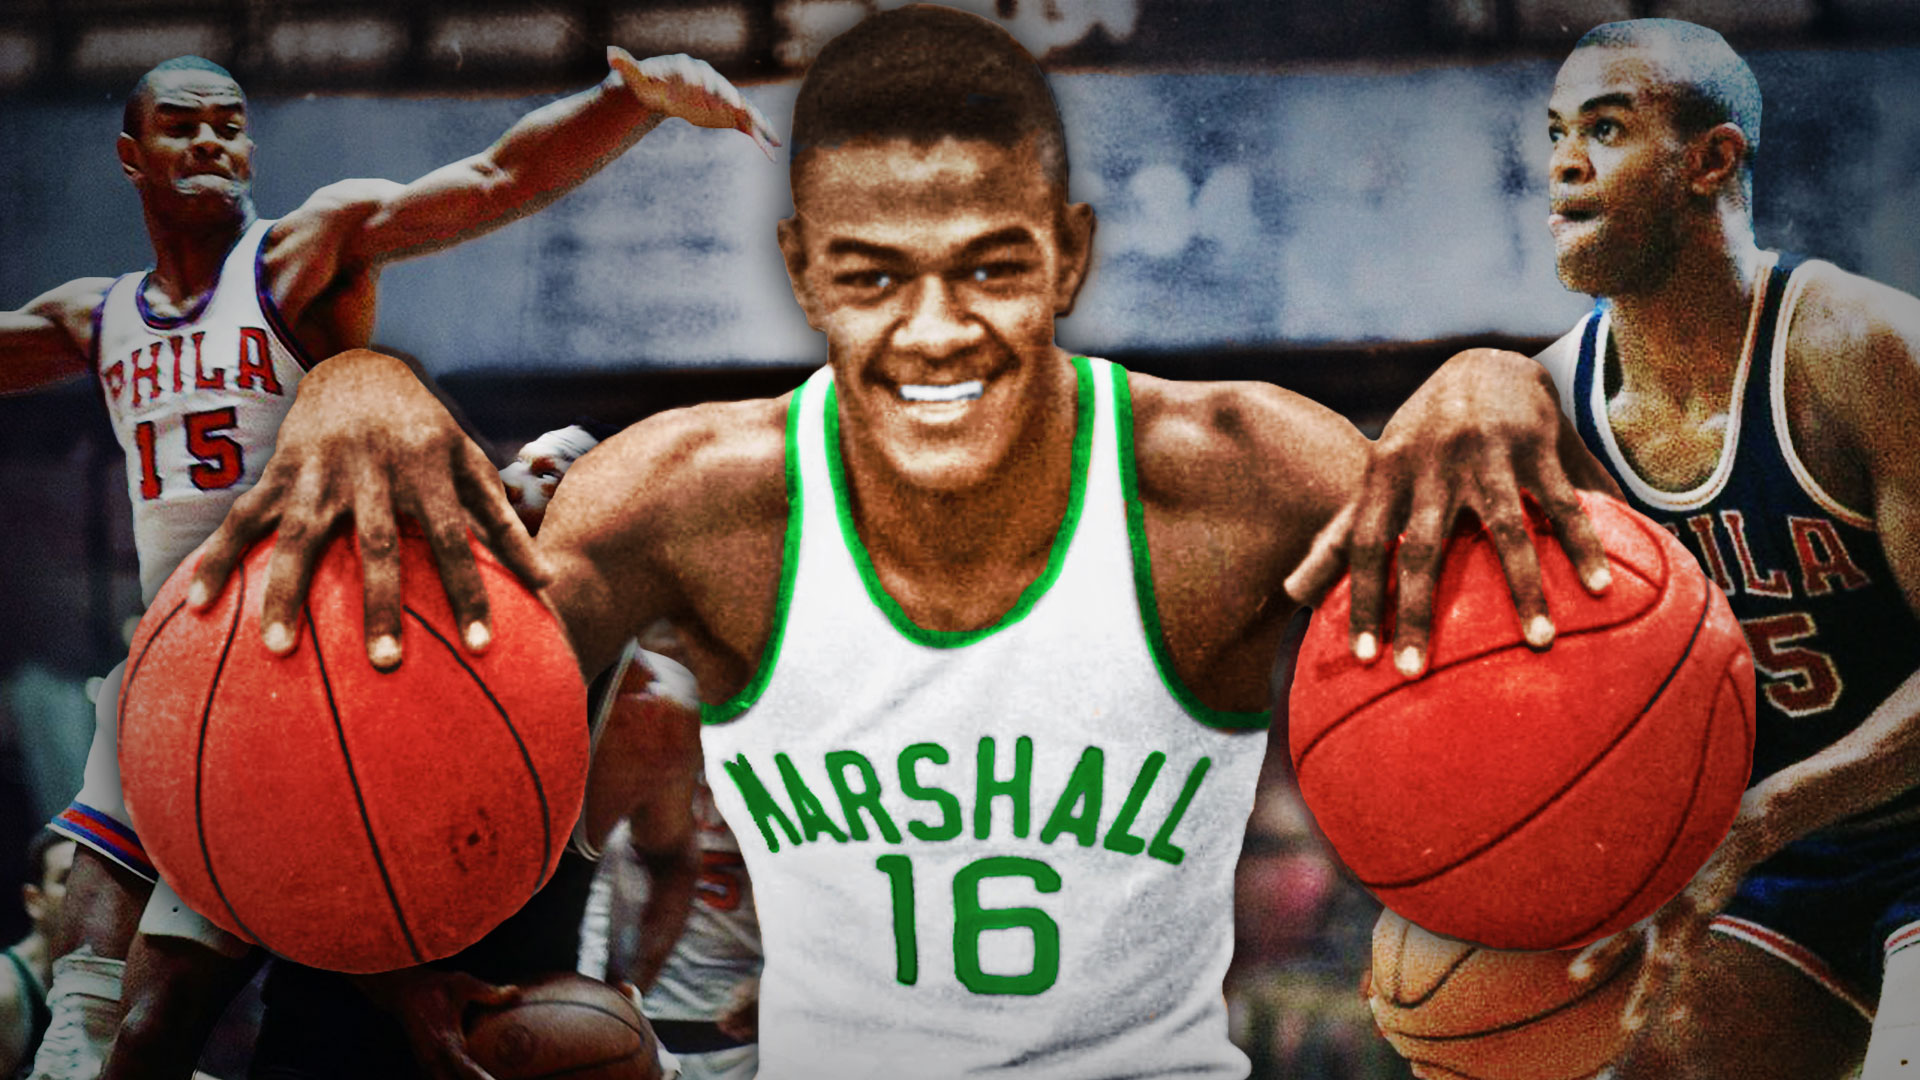 Hal Greer: Marshall's Trailblazer